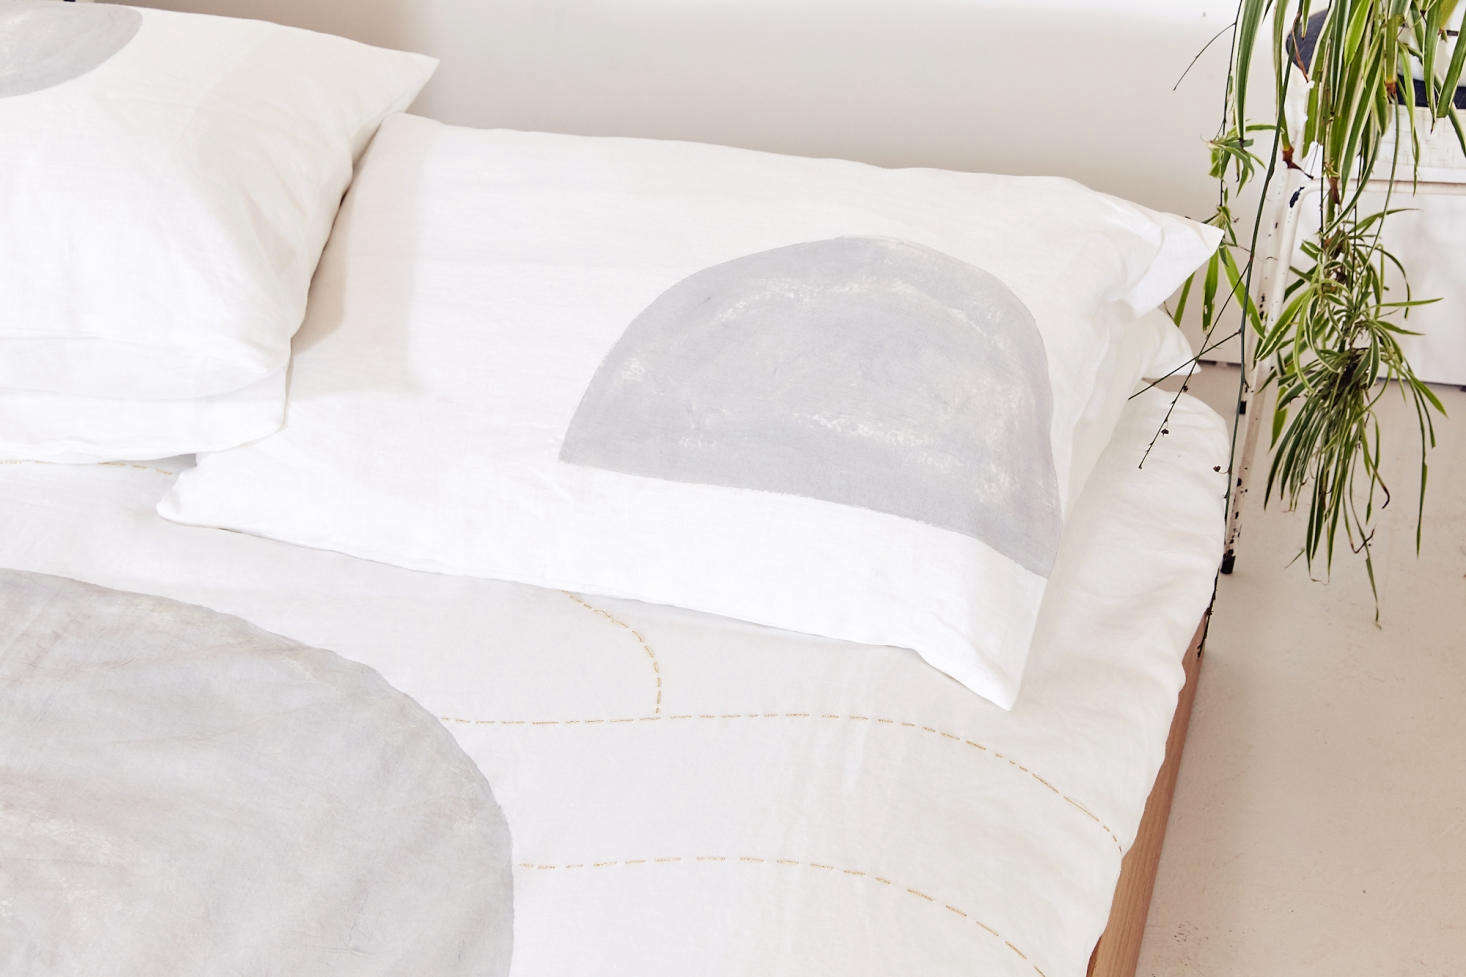 To add dimension, Vallentine finishes some of the duvets with subtle gold embroidery that she hand stitches herself.